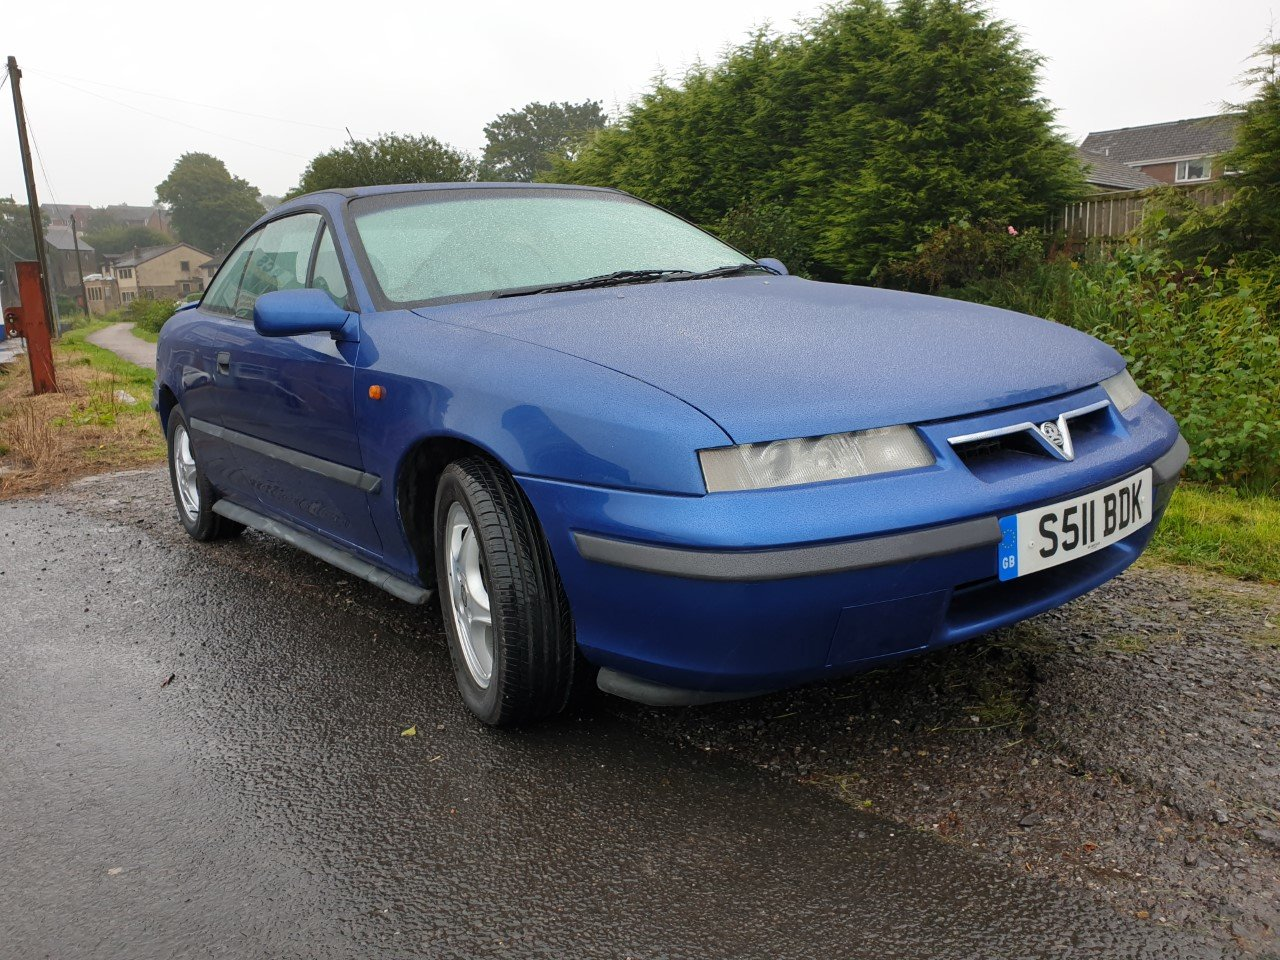 1998 Vauxhall Calibra SE8 in Metallic Blue. For Sale (picture 1 of 6)